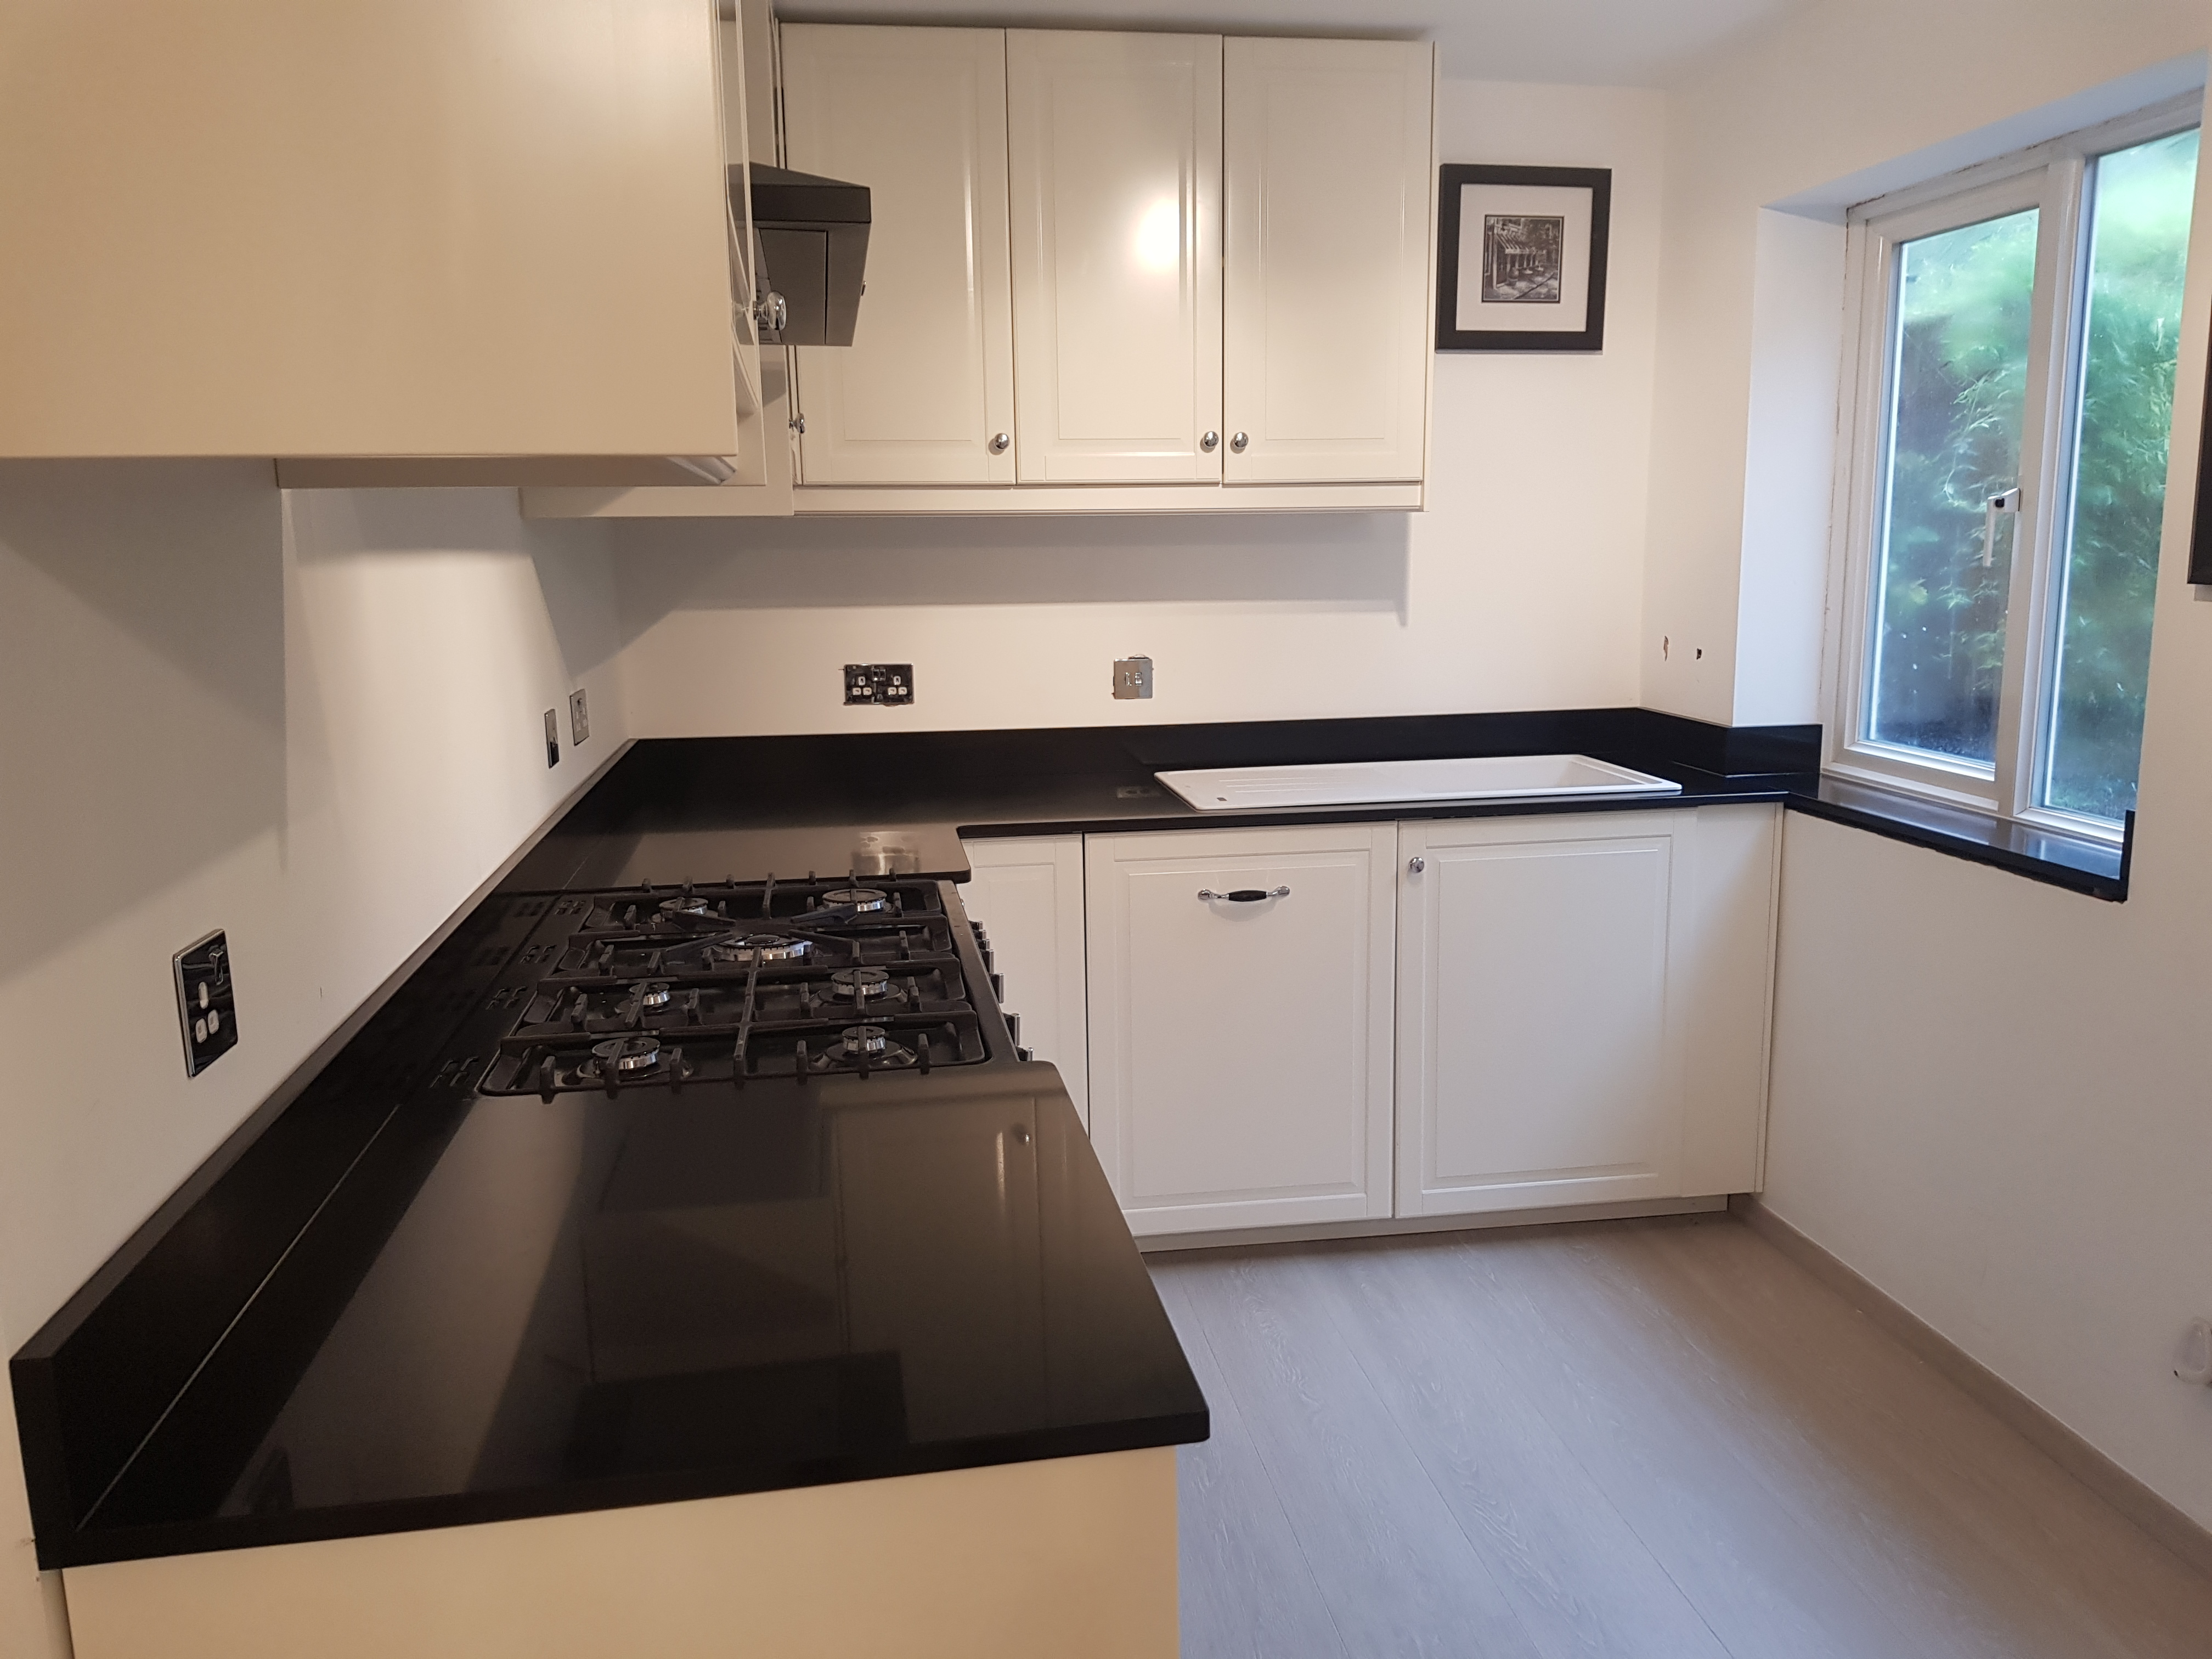 Jet Black Caesarstone - Clapham, London